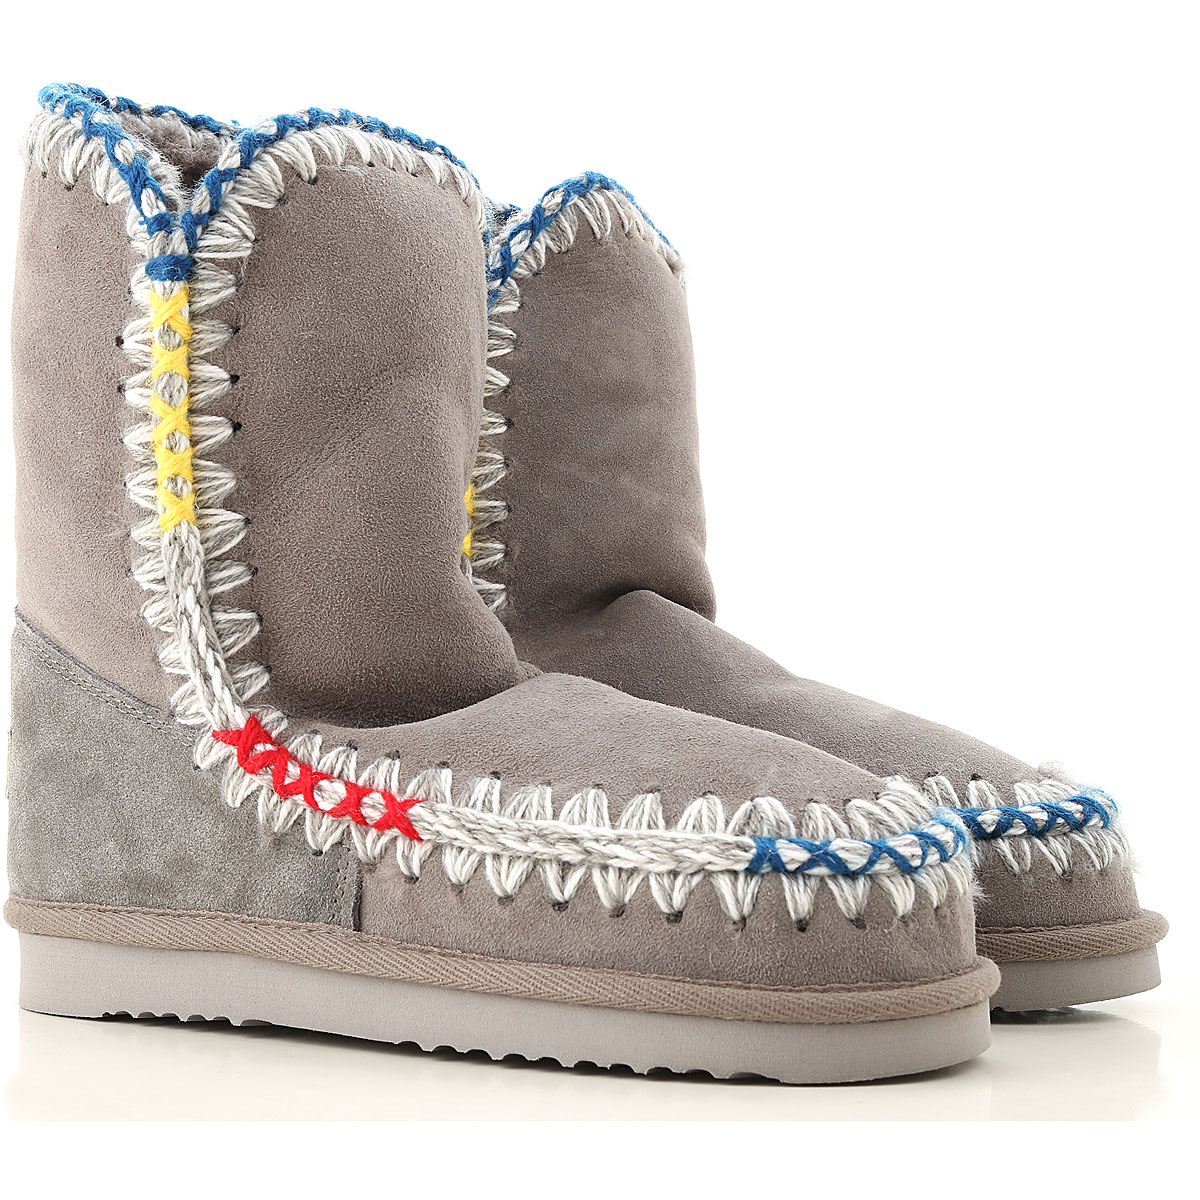 Image of Mou Boots for Women, Booties, Grey, Suede leather, 2017, EUR 37 - UK 4 - USA 6.5 EUR 38 - UK 5 - USA 7.5 EUR 39 - UK 6 - USA 8.5 EUR 40 - UK 7 - USA 9.5 EUR 41 - UK 8 - USA 10.5